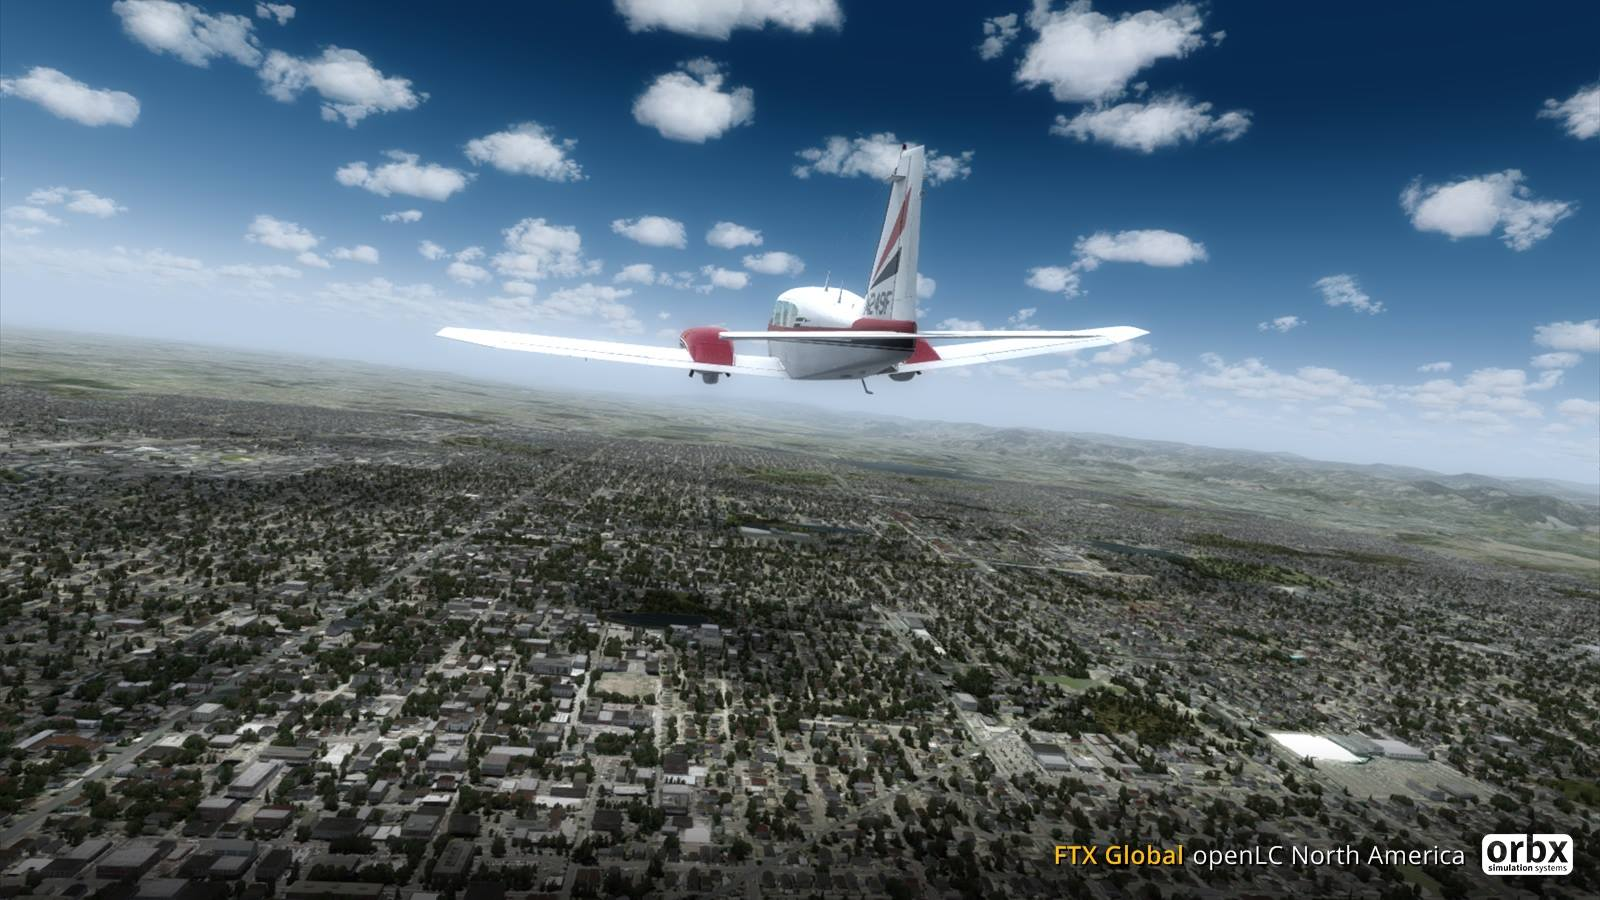 FTX Global openLC North America Released! | Simmingly